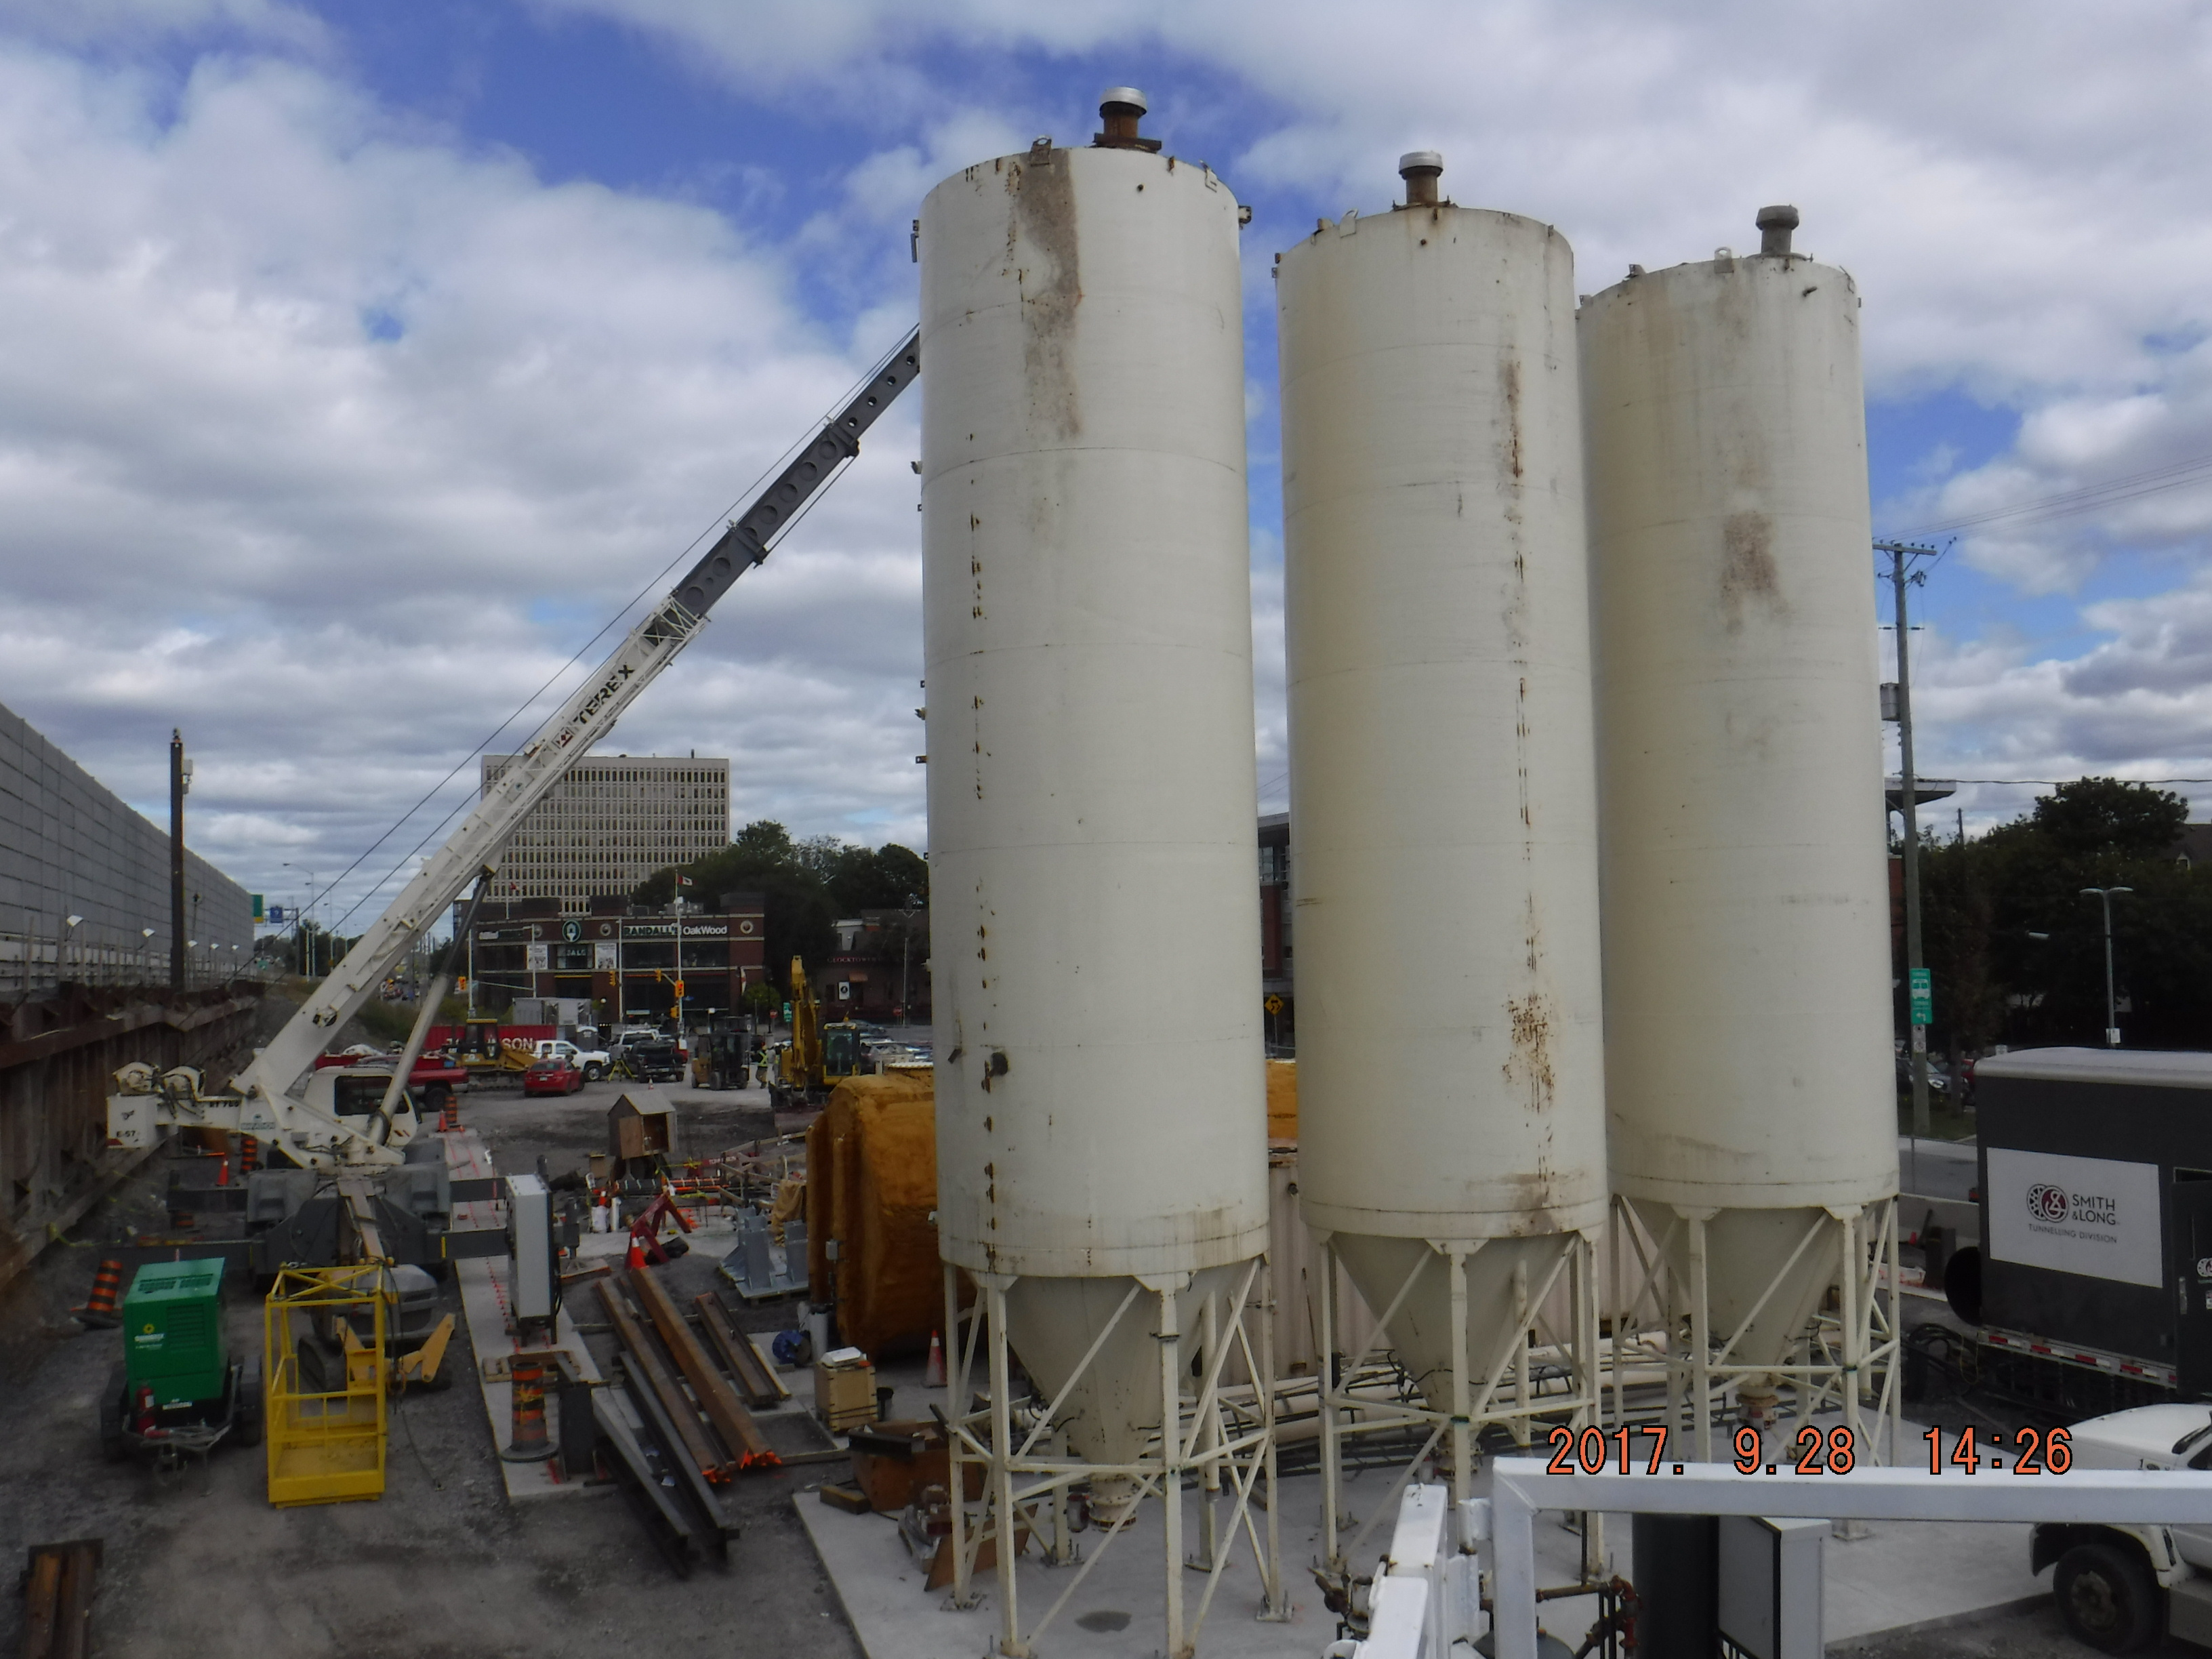 Grout plant silos used for pumping materials during tunneling